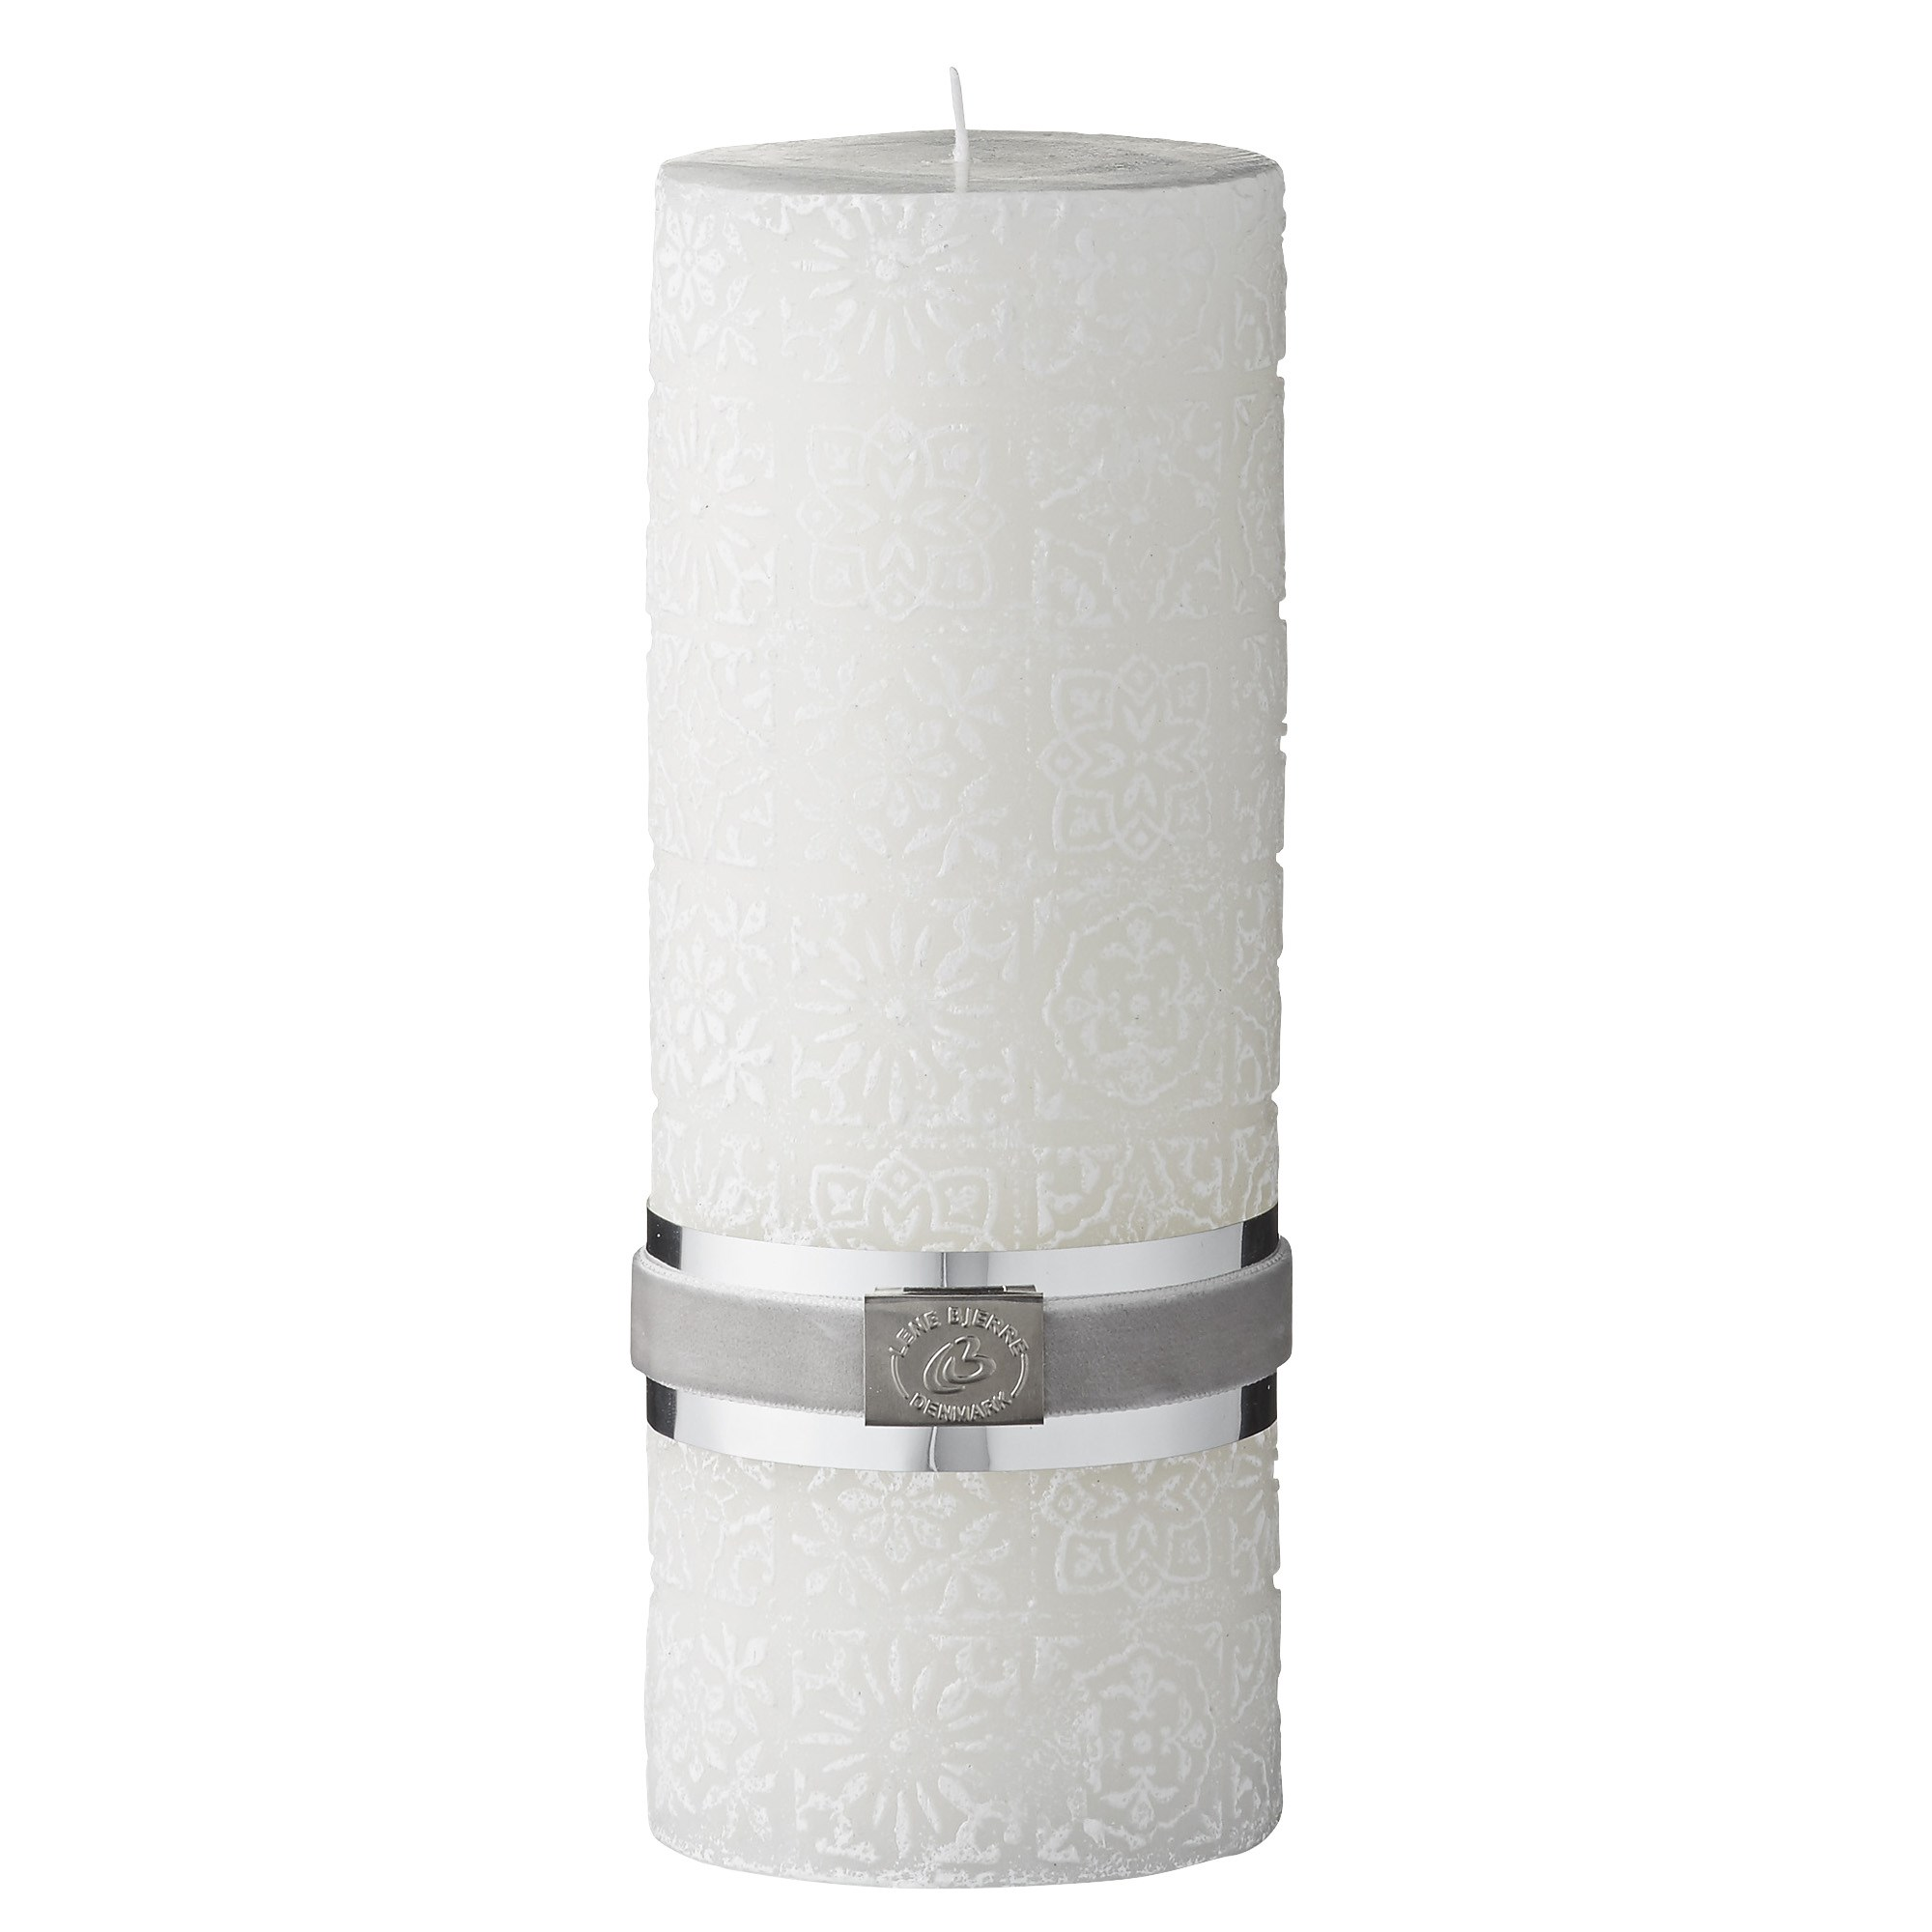 LENE BJERRE - Tile White Pillar Candle 20cm